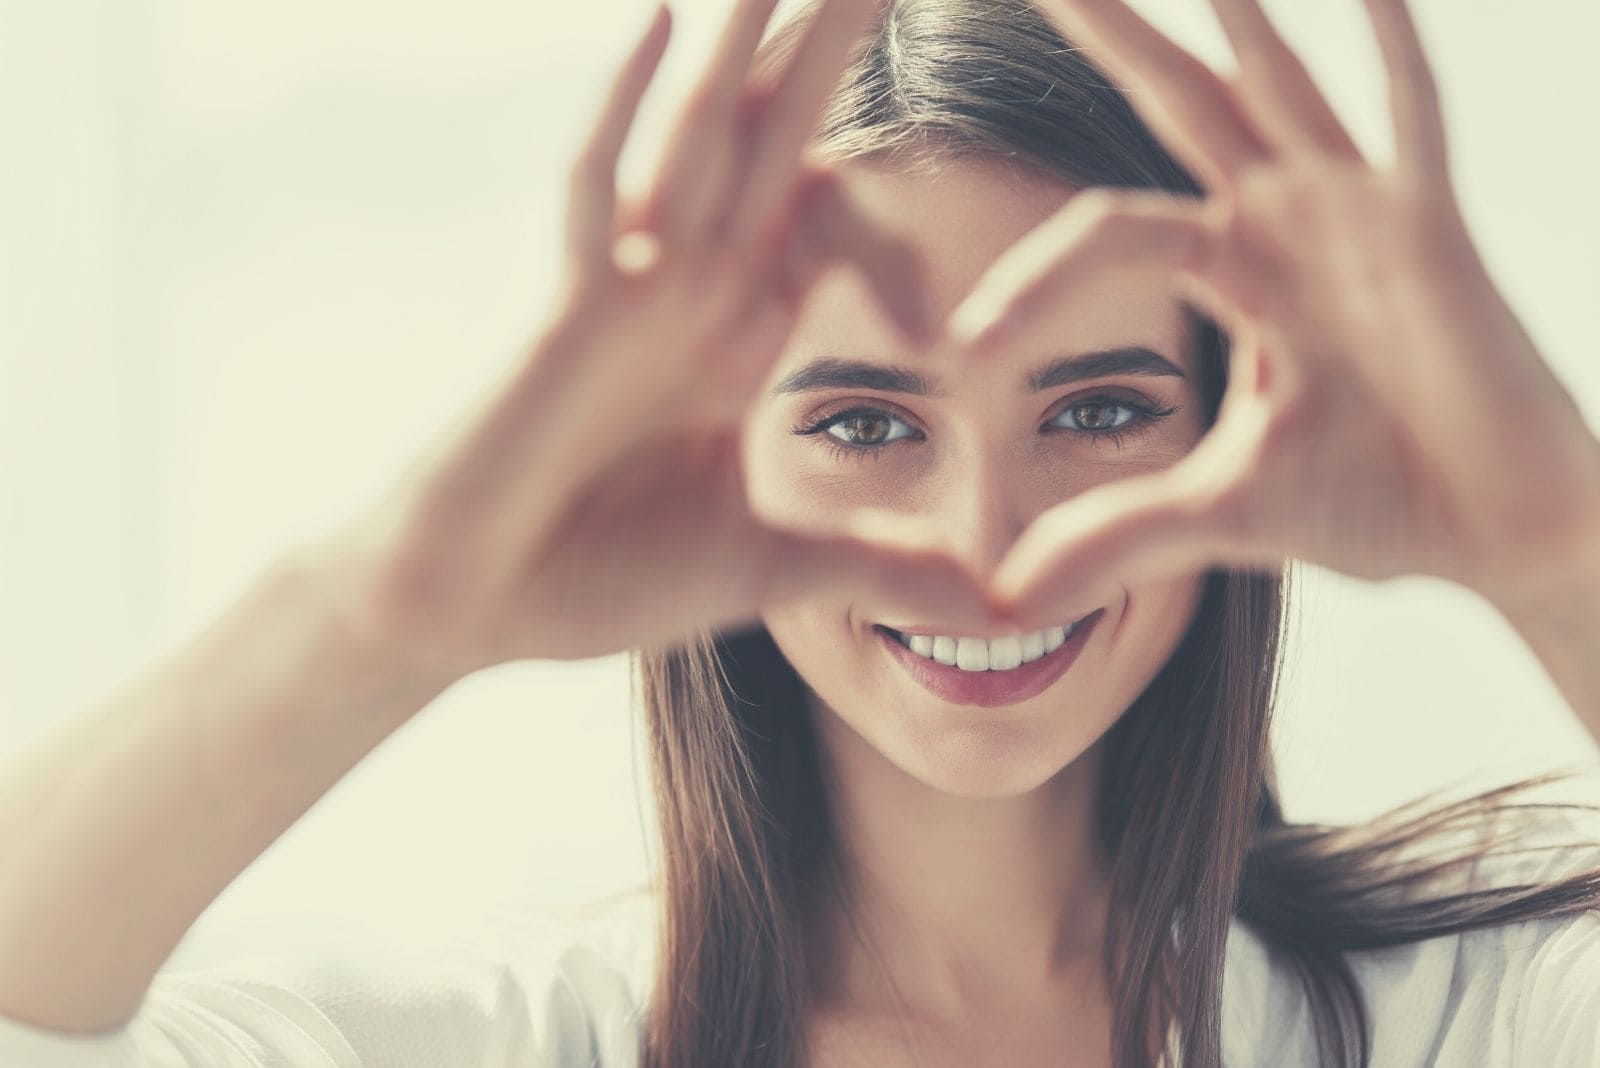 woman making hand sign of heart shaped focus on the face